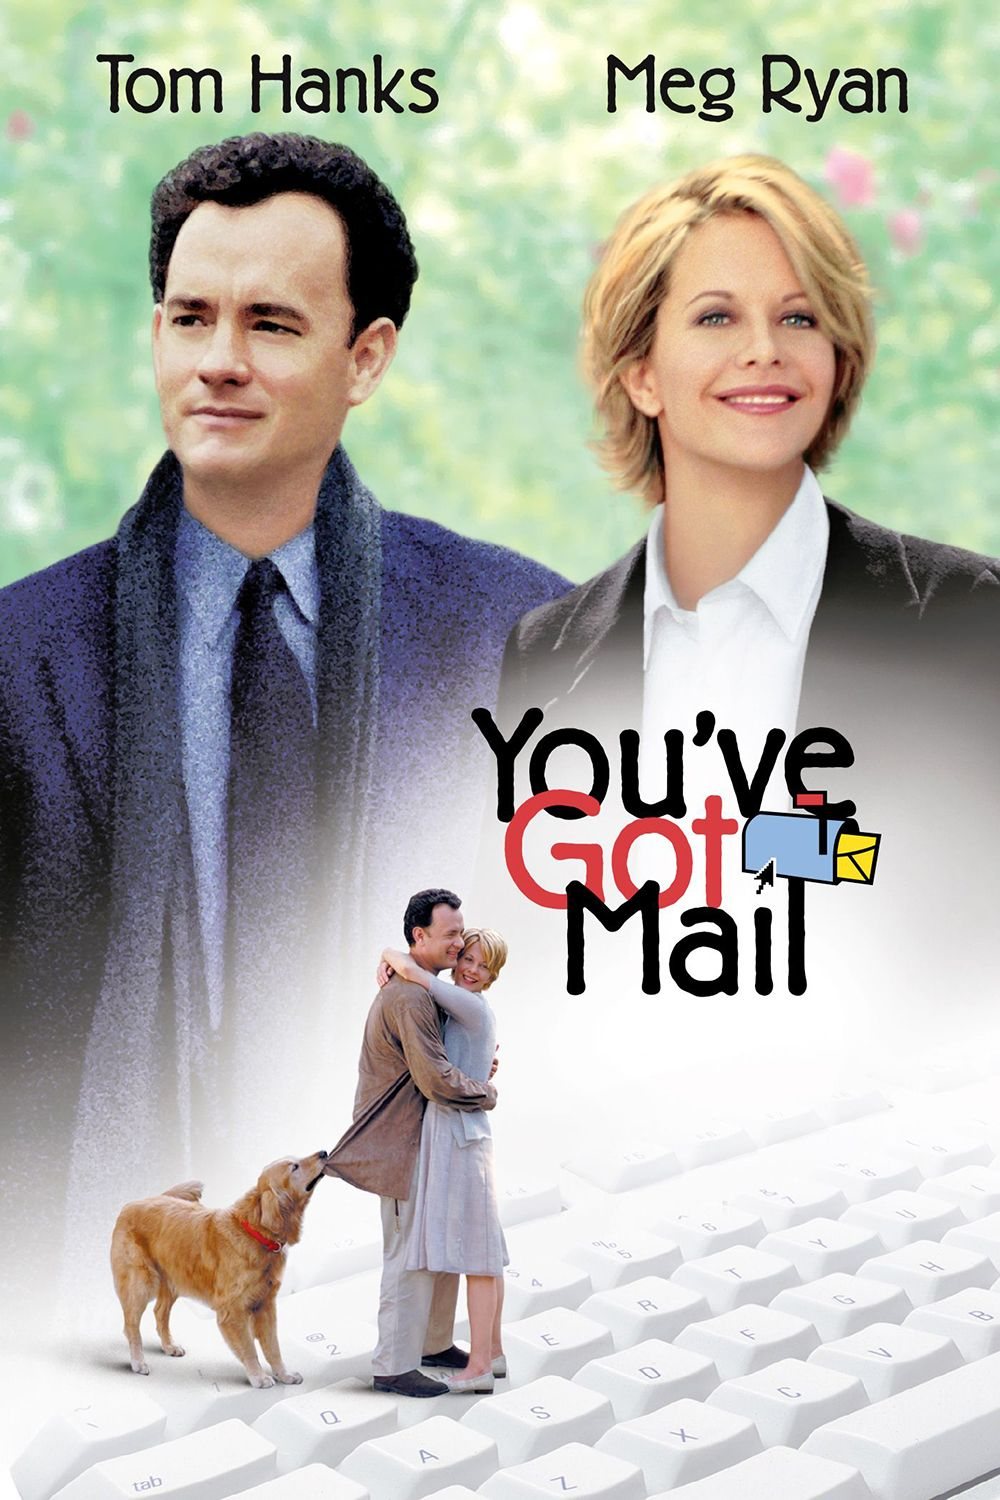 'You've Got Mail' (1998) Following the success of 1993's Sleepless in Seattle , this delightful rom-com reunites Meg Ryan and Tom Hanks, two actors who have undeniable chemistry. It's a now-quaint-seeming story of two professional rivals who, unbeknownst to them, meet and fall in love via an online chat room.